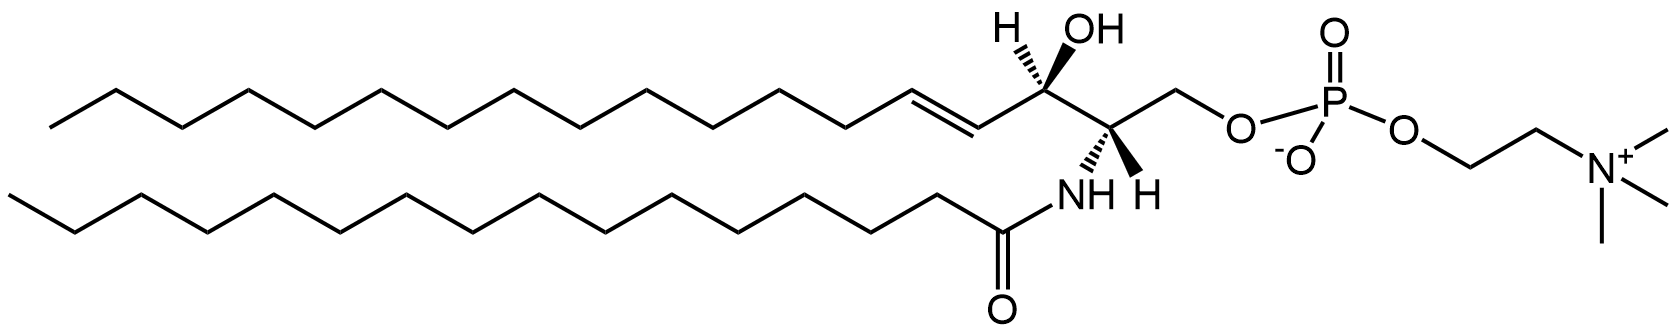 Leukotriene B4